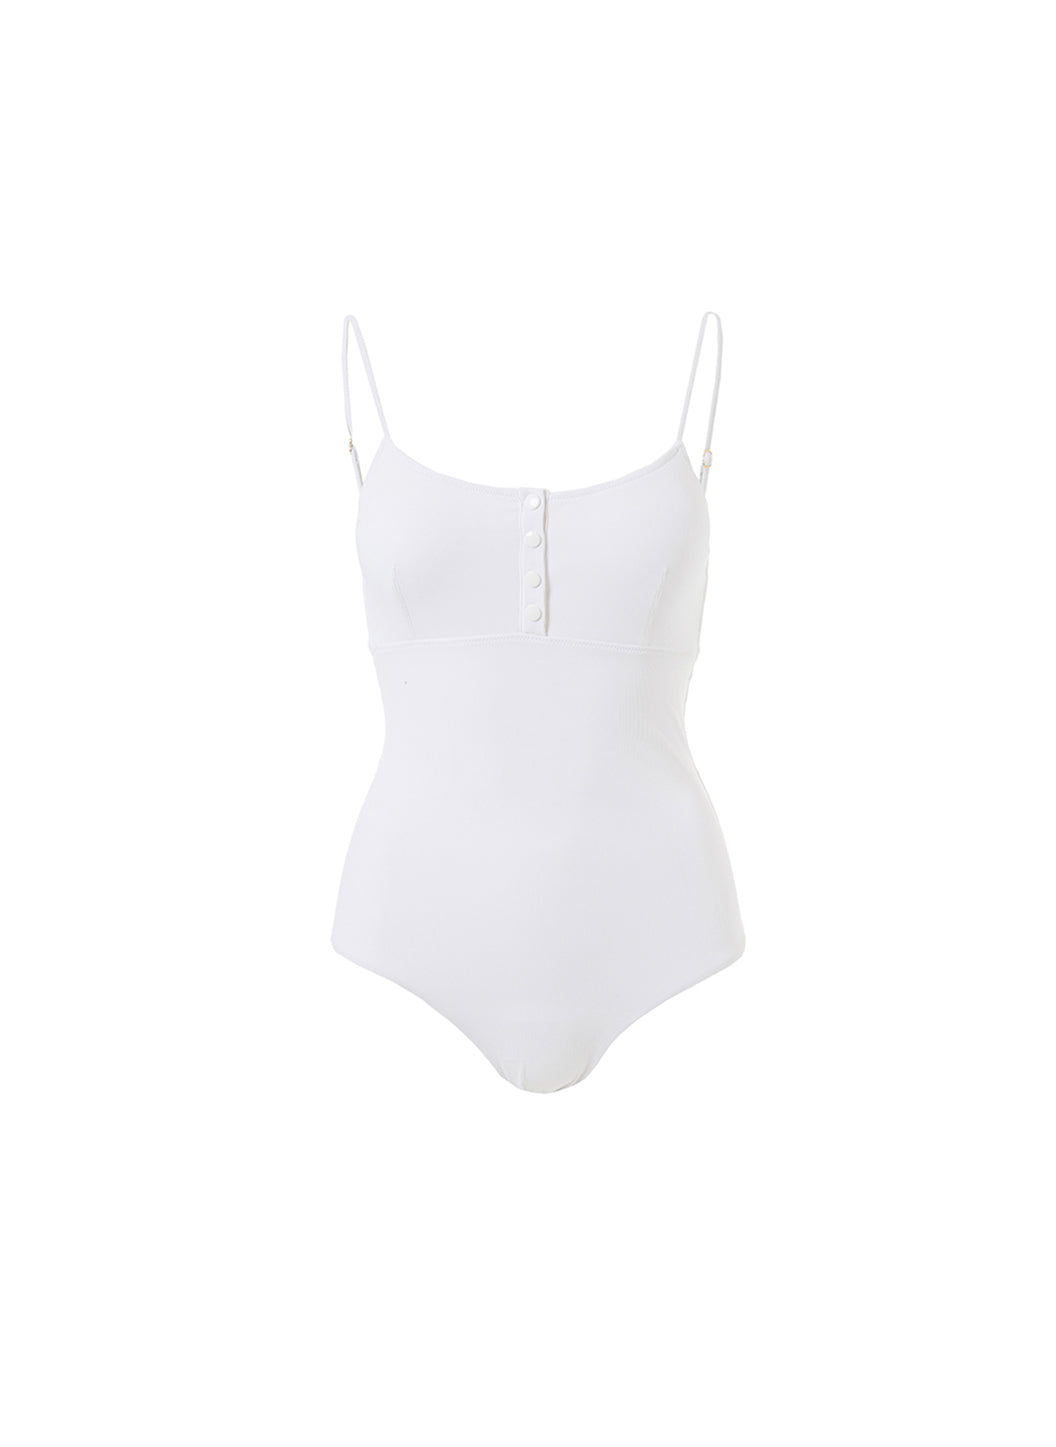 Calabasas White Ribbed Over The Shoulder Swimsuit  - Melissa Odabash One Piece